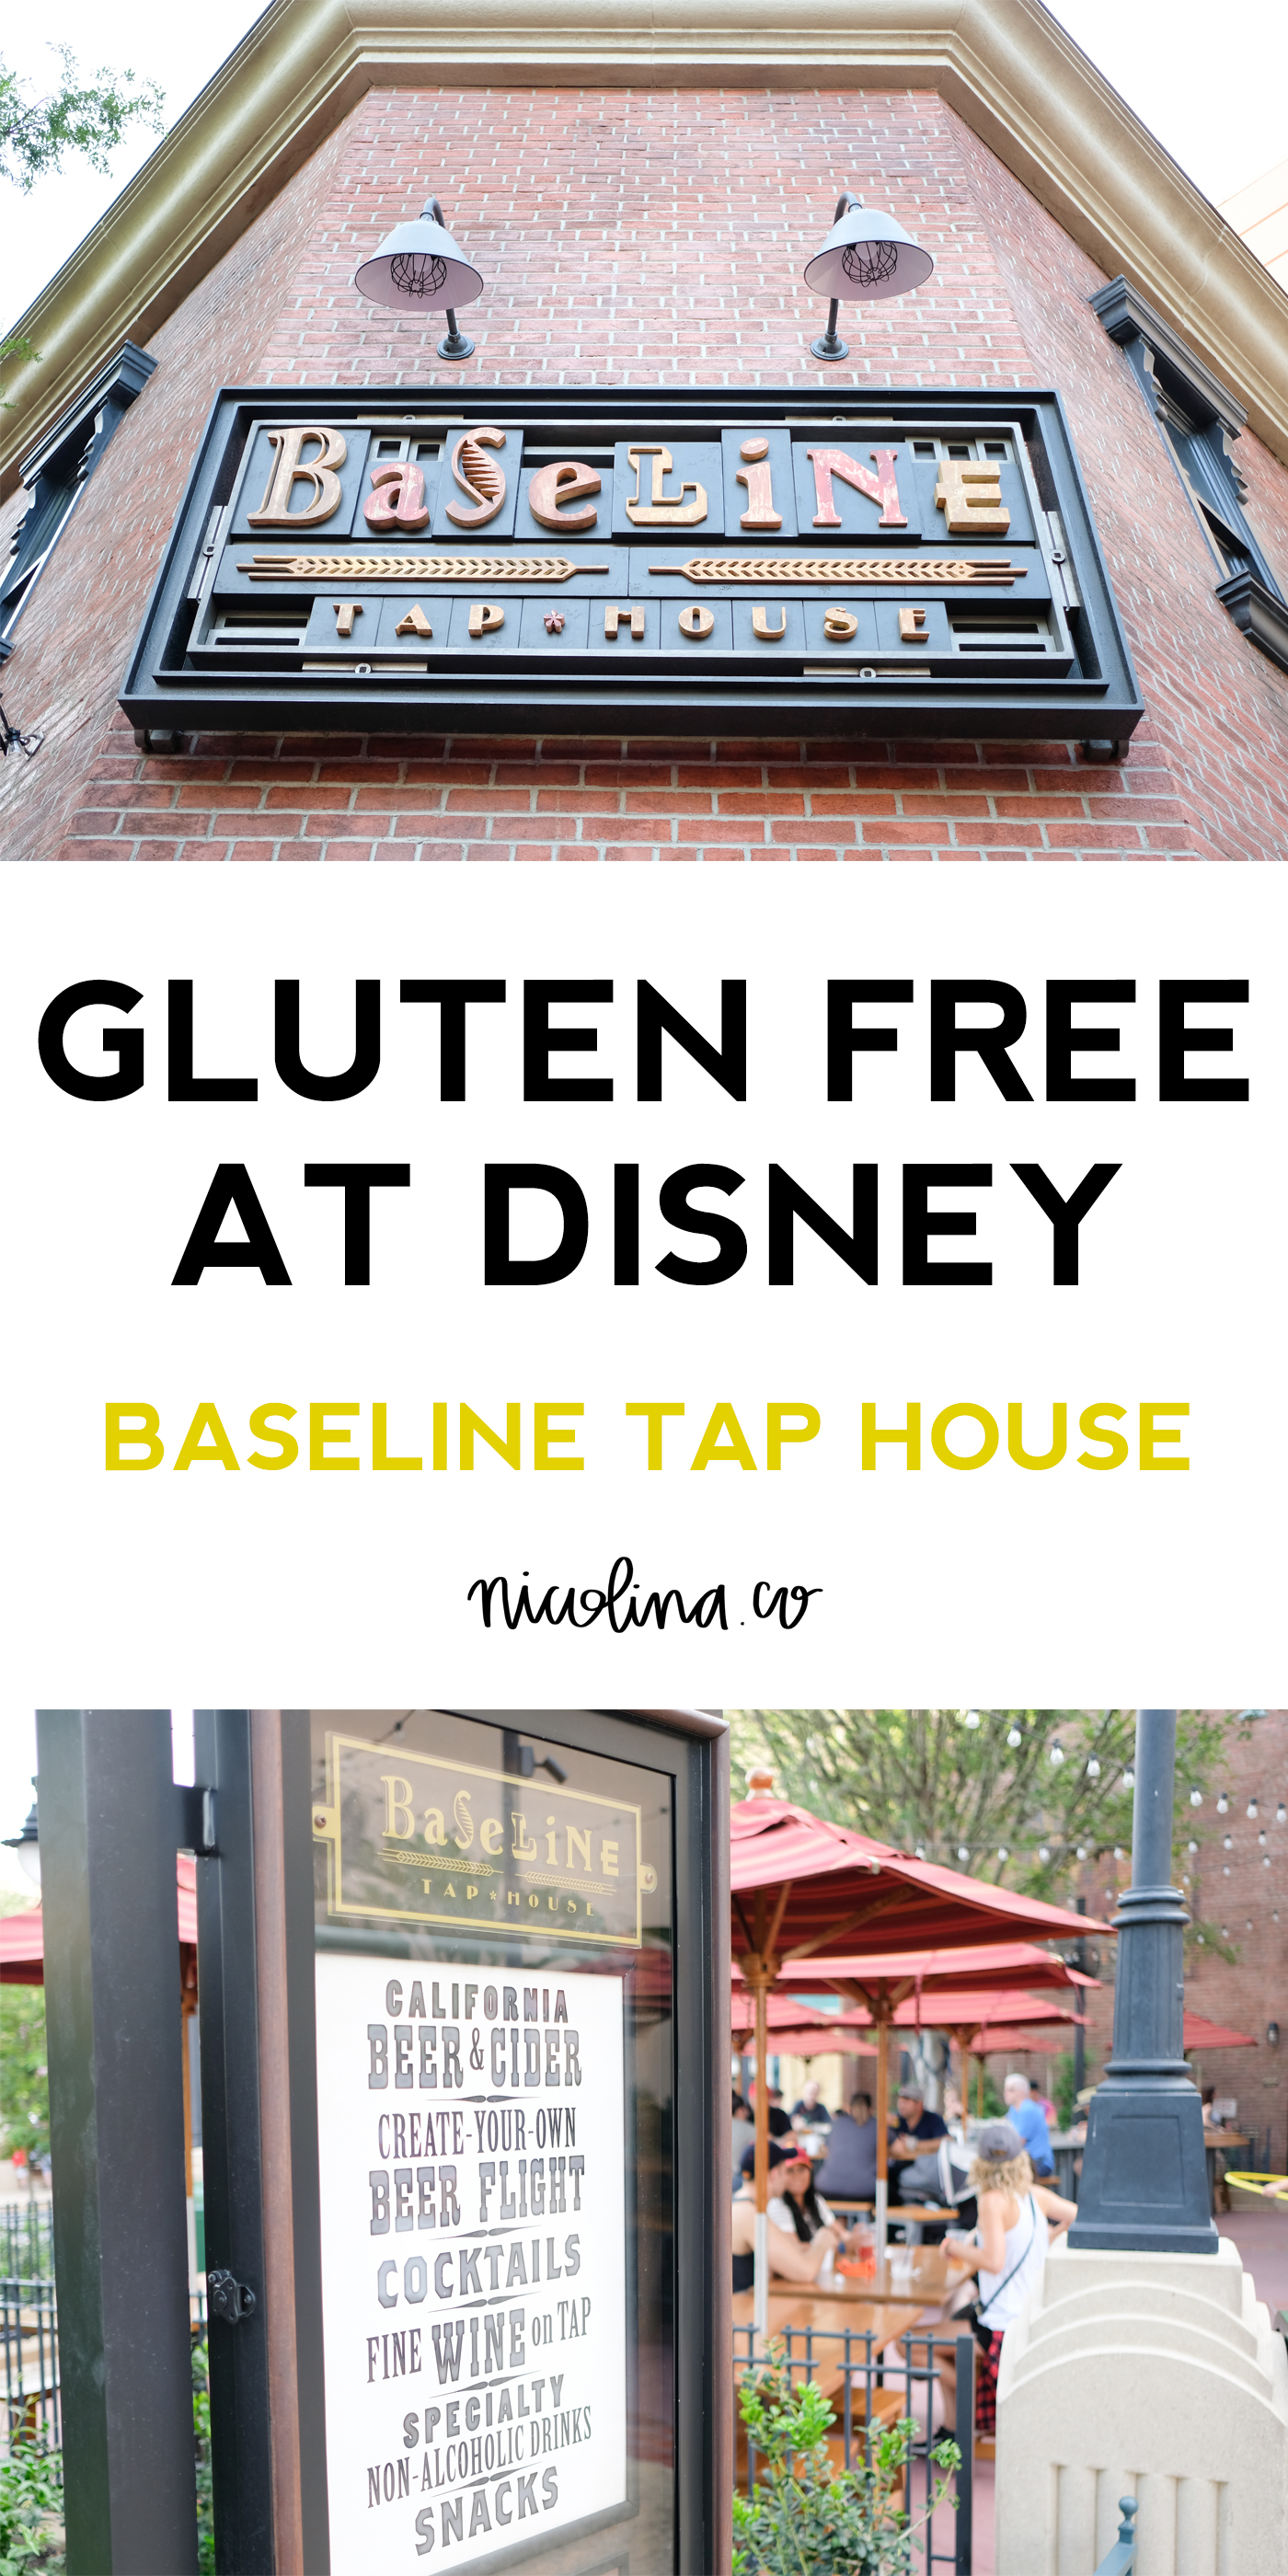 Gluten Free at Disney Baseline Tap House